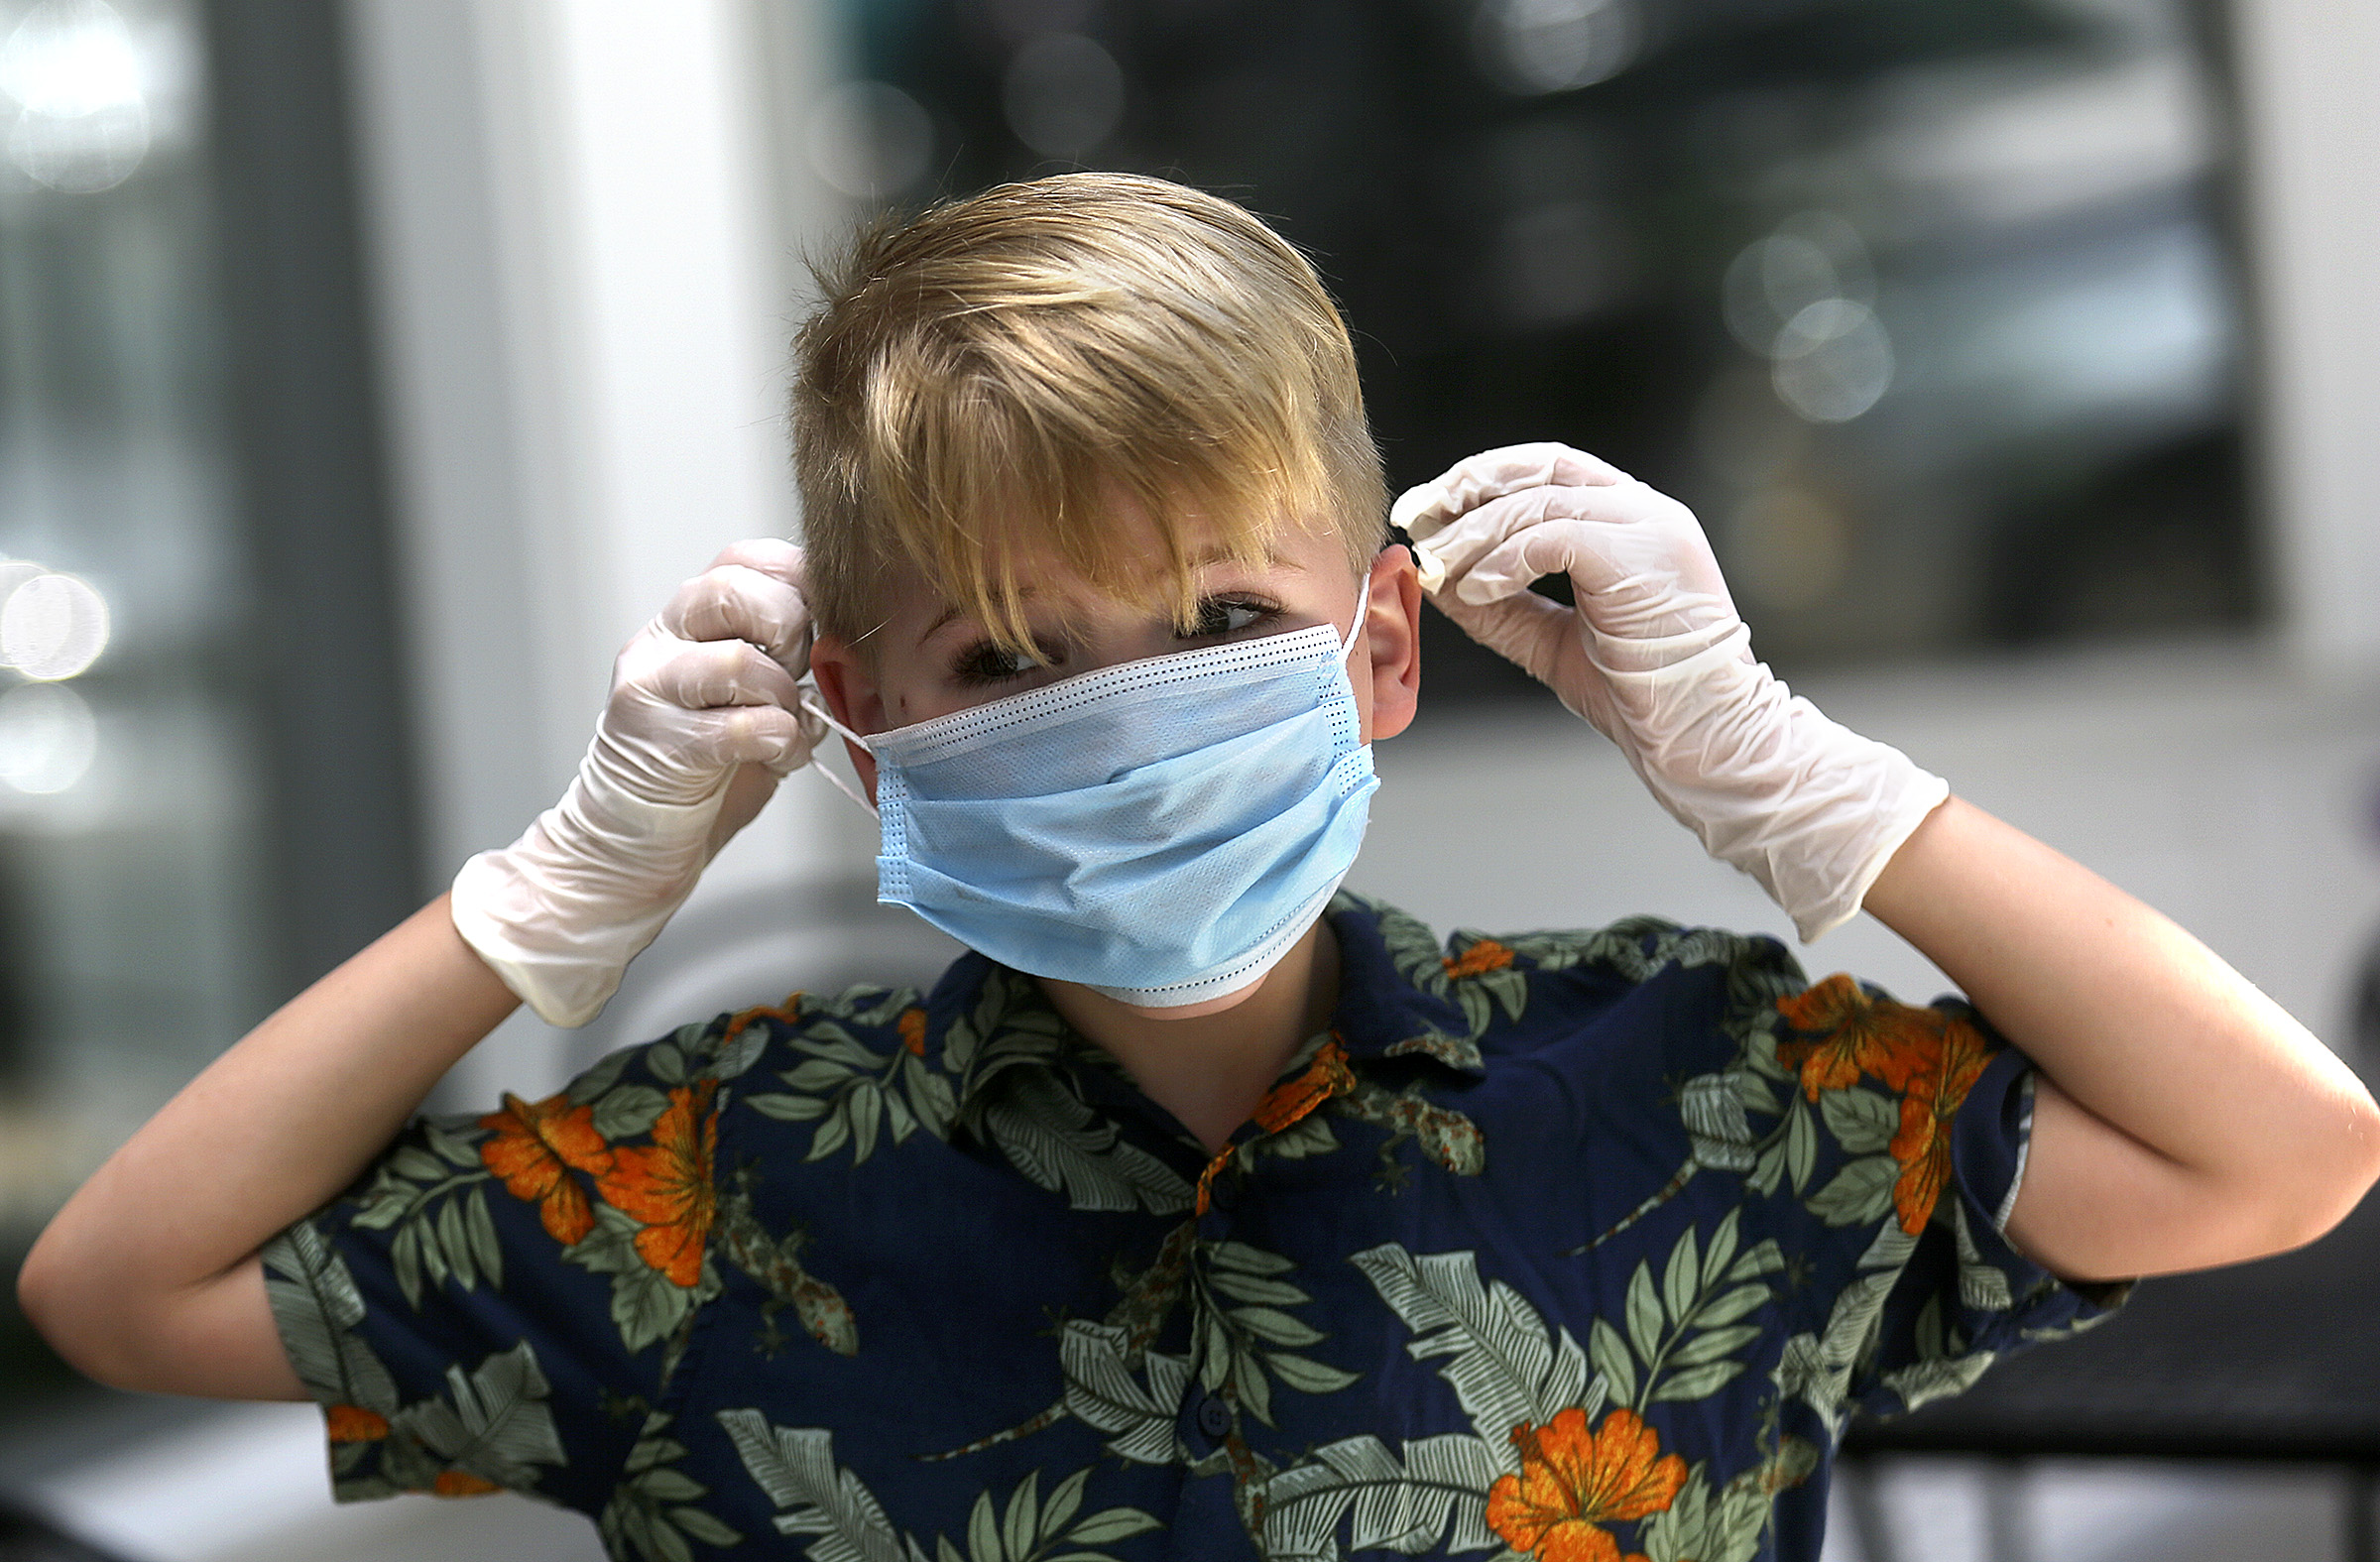 Barret Pritchard, 8, puts on a mask while working at a lemonade stand with his sister in Provo.